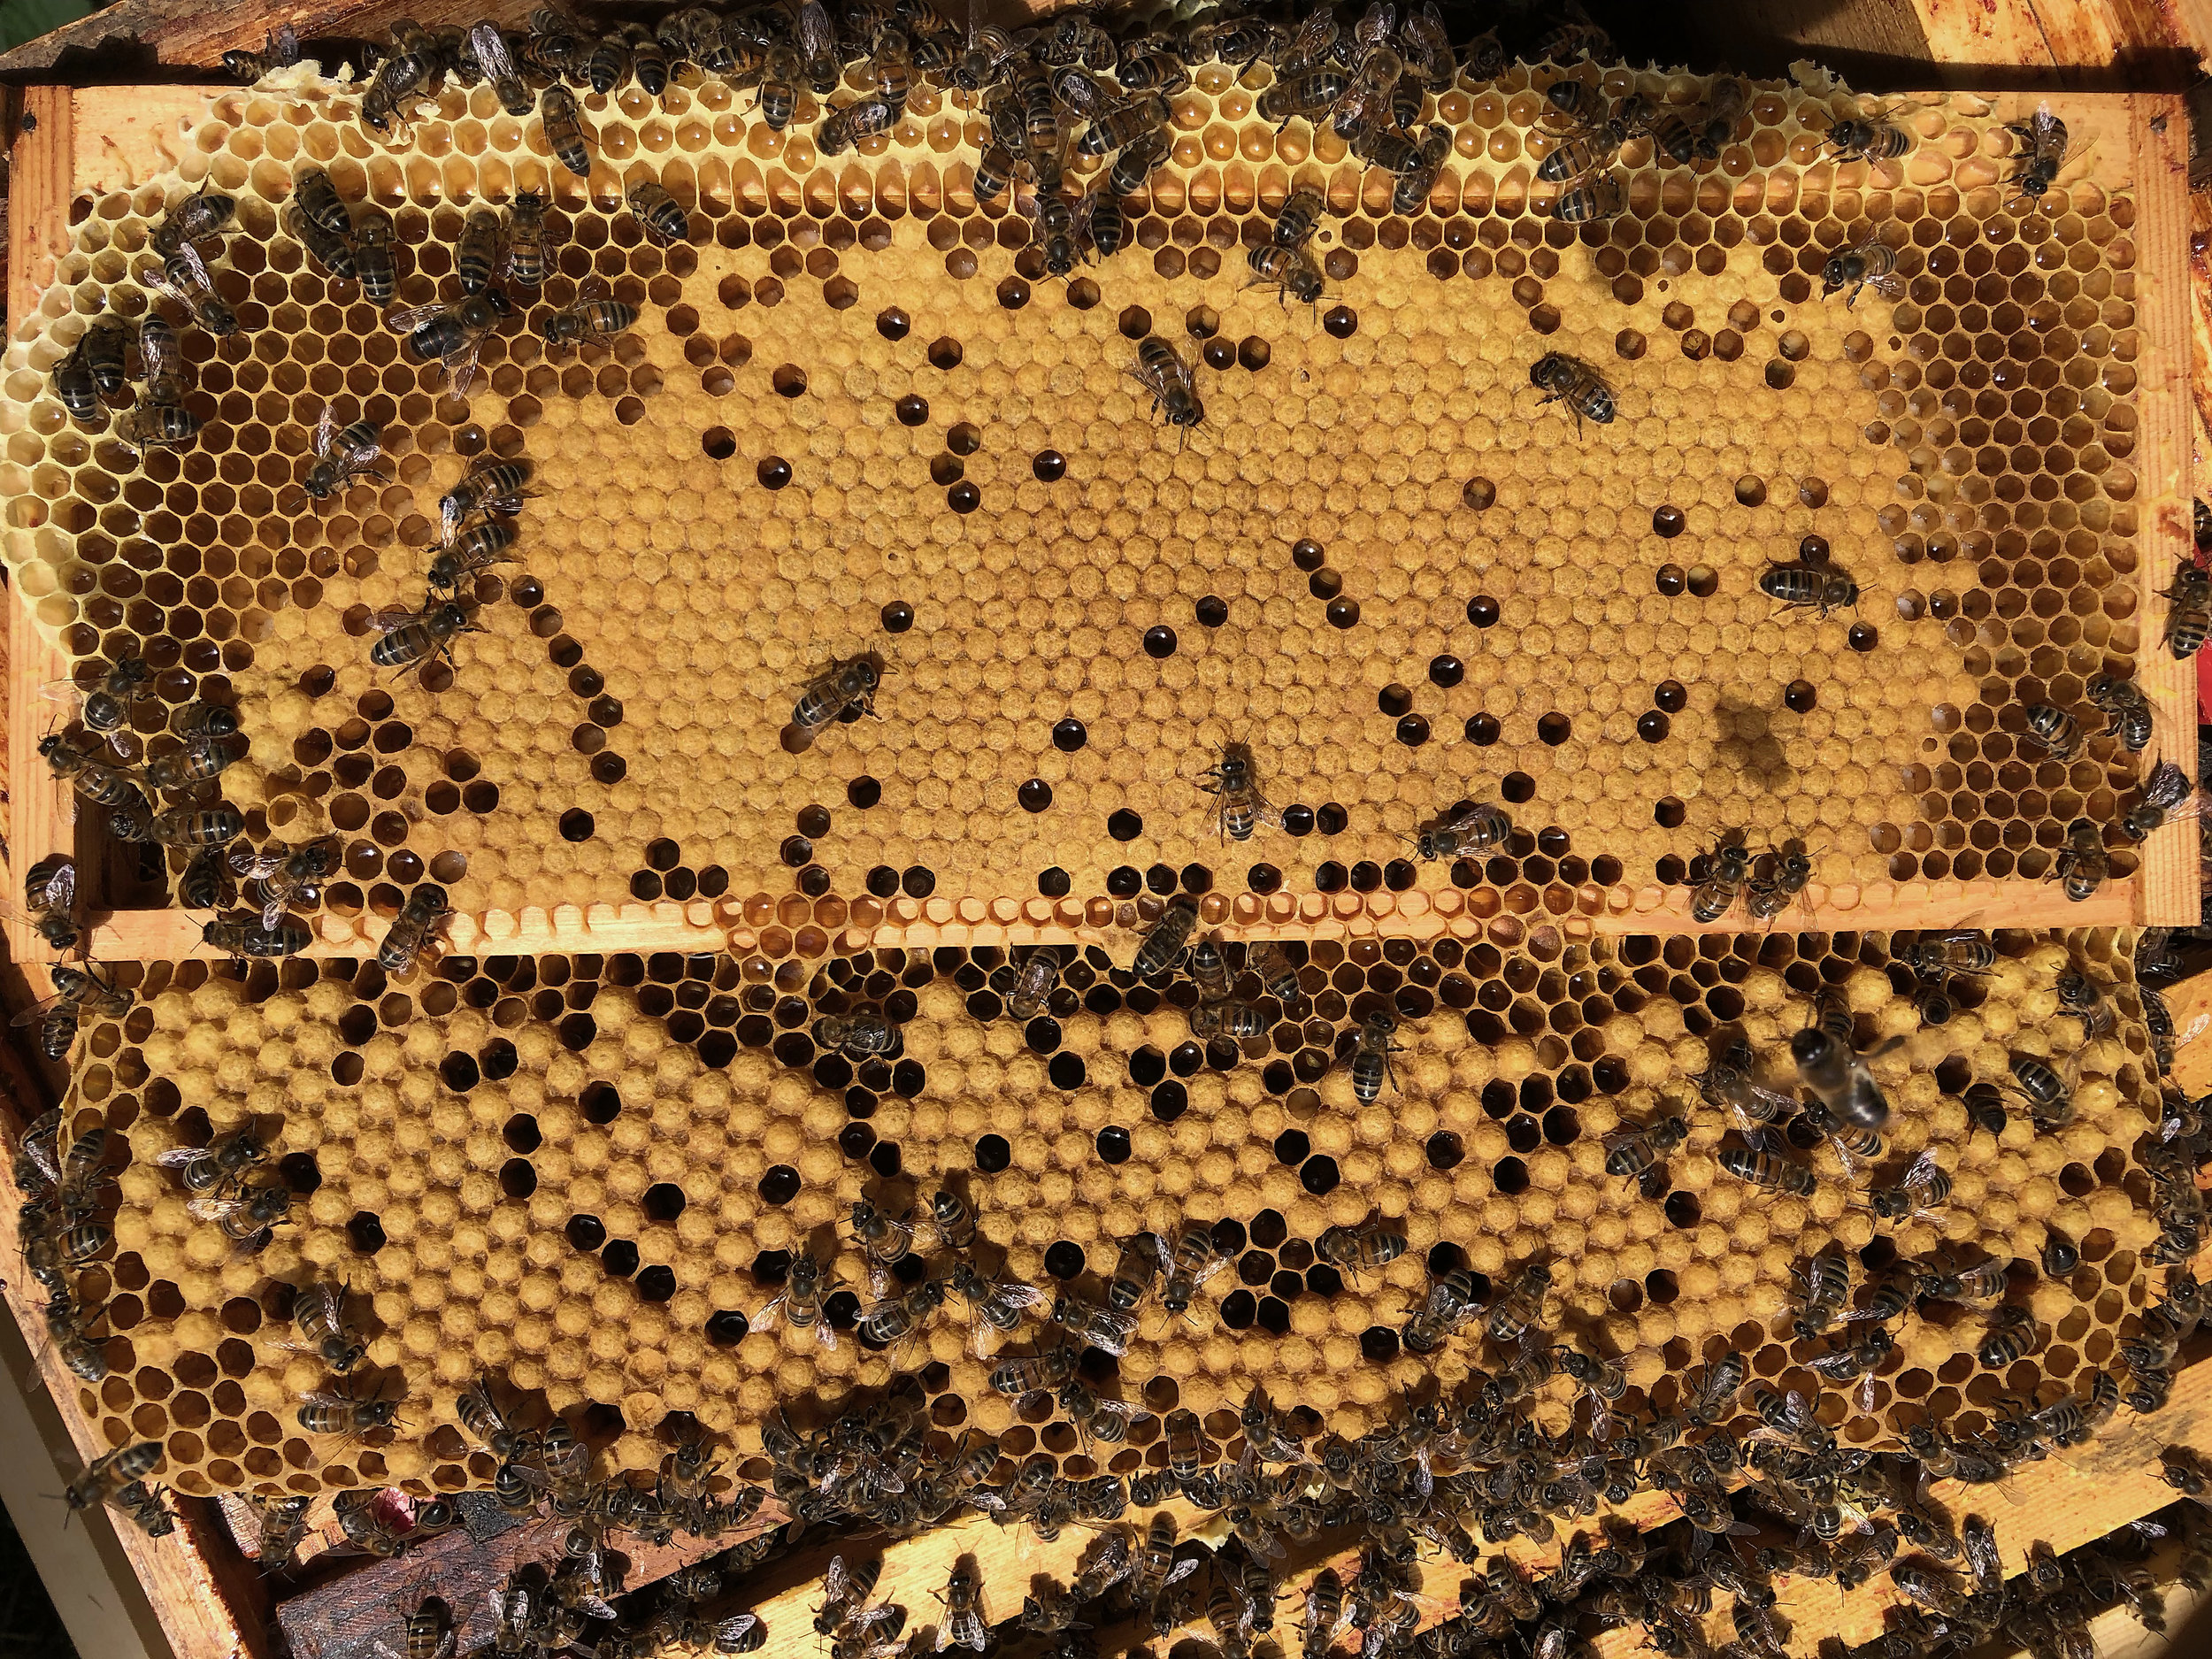 Drone comb built and the brood covered underneath the worker brood in the super frame.